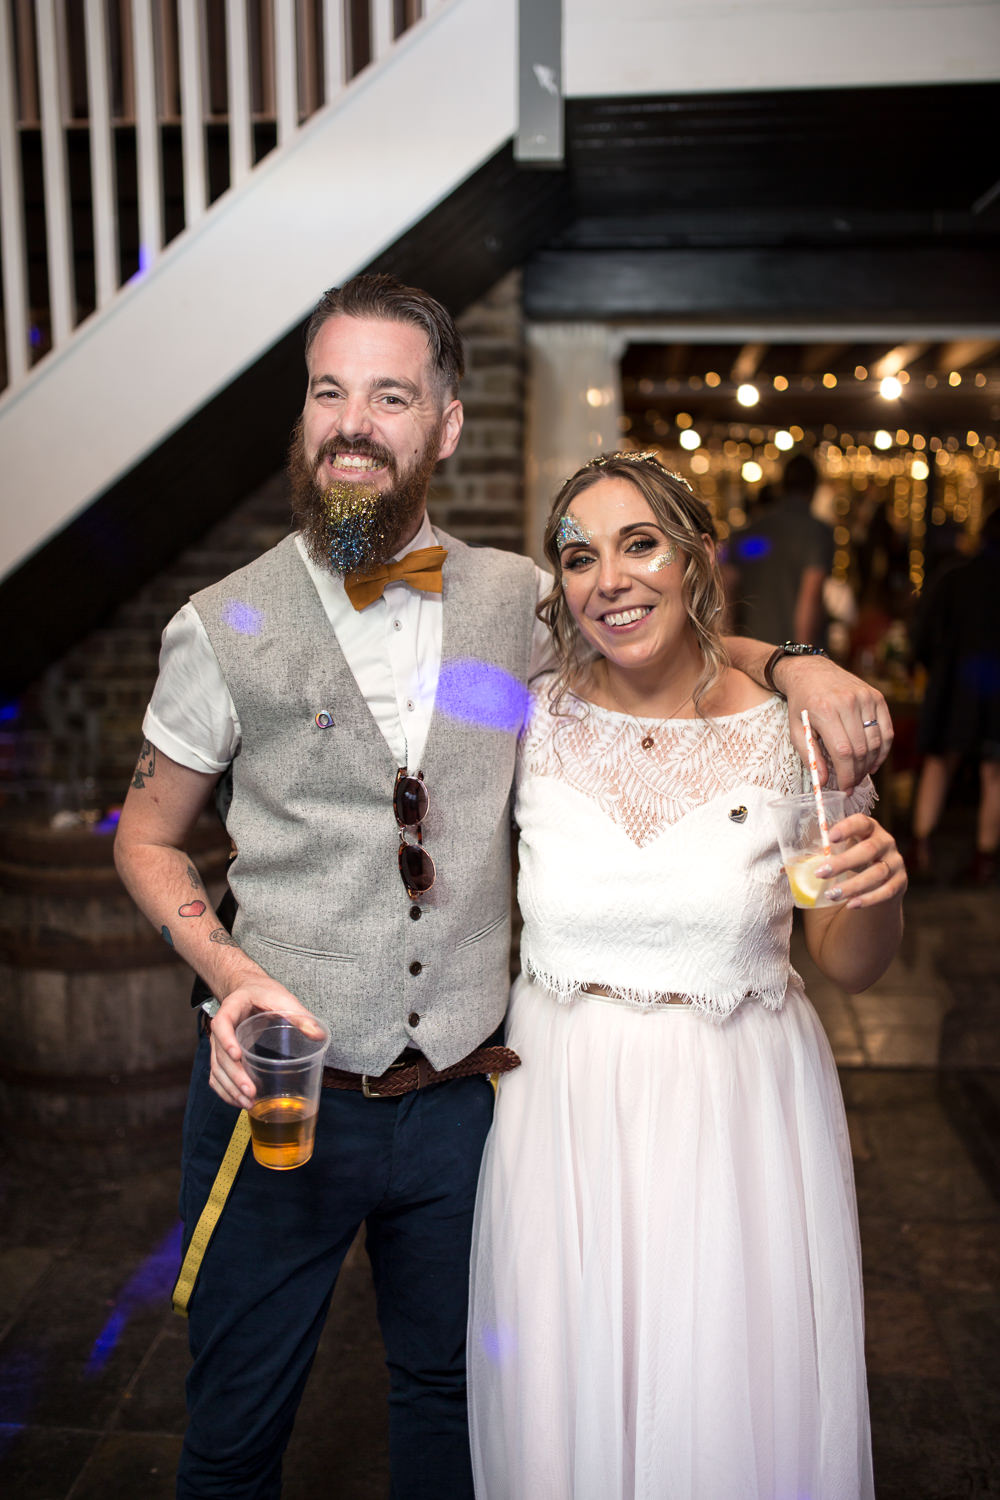 Bride Bridal Lace Cap Sleeve Separates Top Skirt Bow Tie Braces Groom Waistcoat Glitter Beard Make Up East Quay Wedding Florence Berry Photography